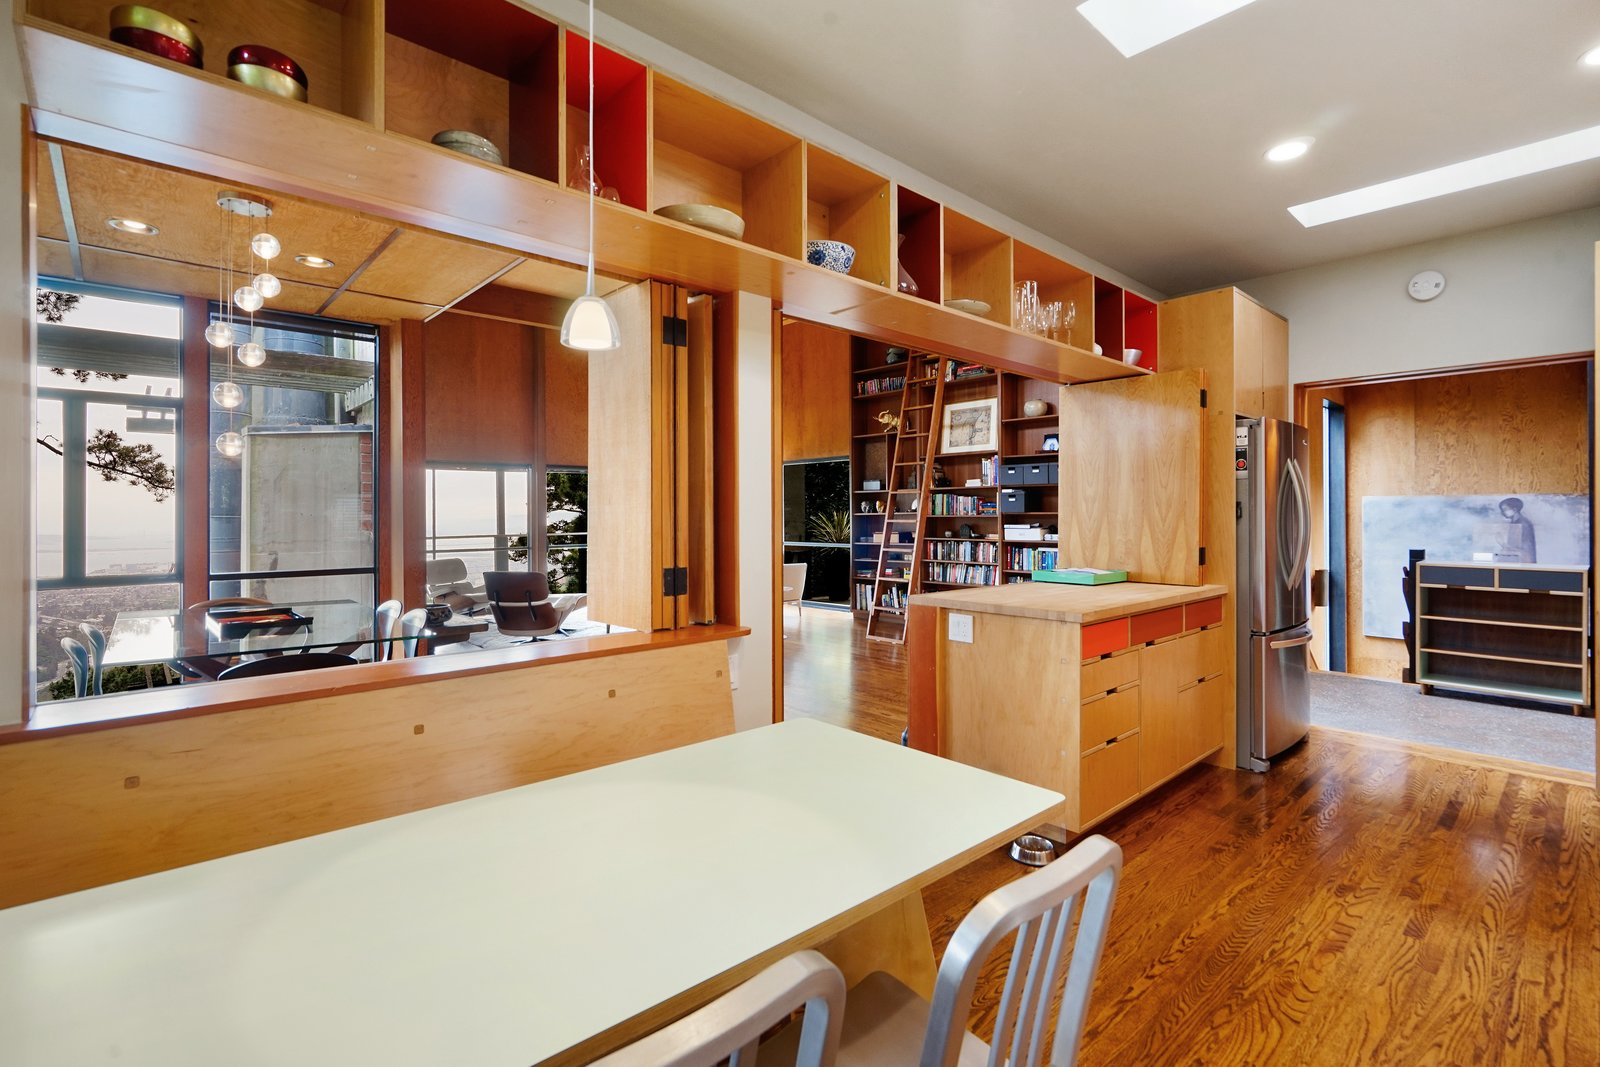 The kitchen has been modernizing it in a period-appropriate manner and includes plenty of well-designed storage space.